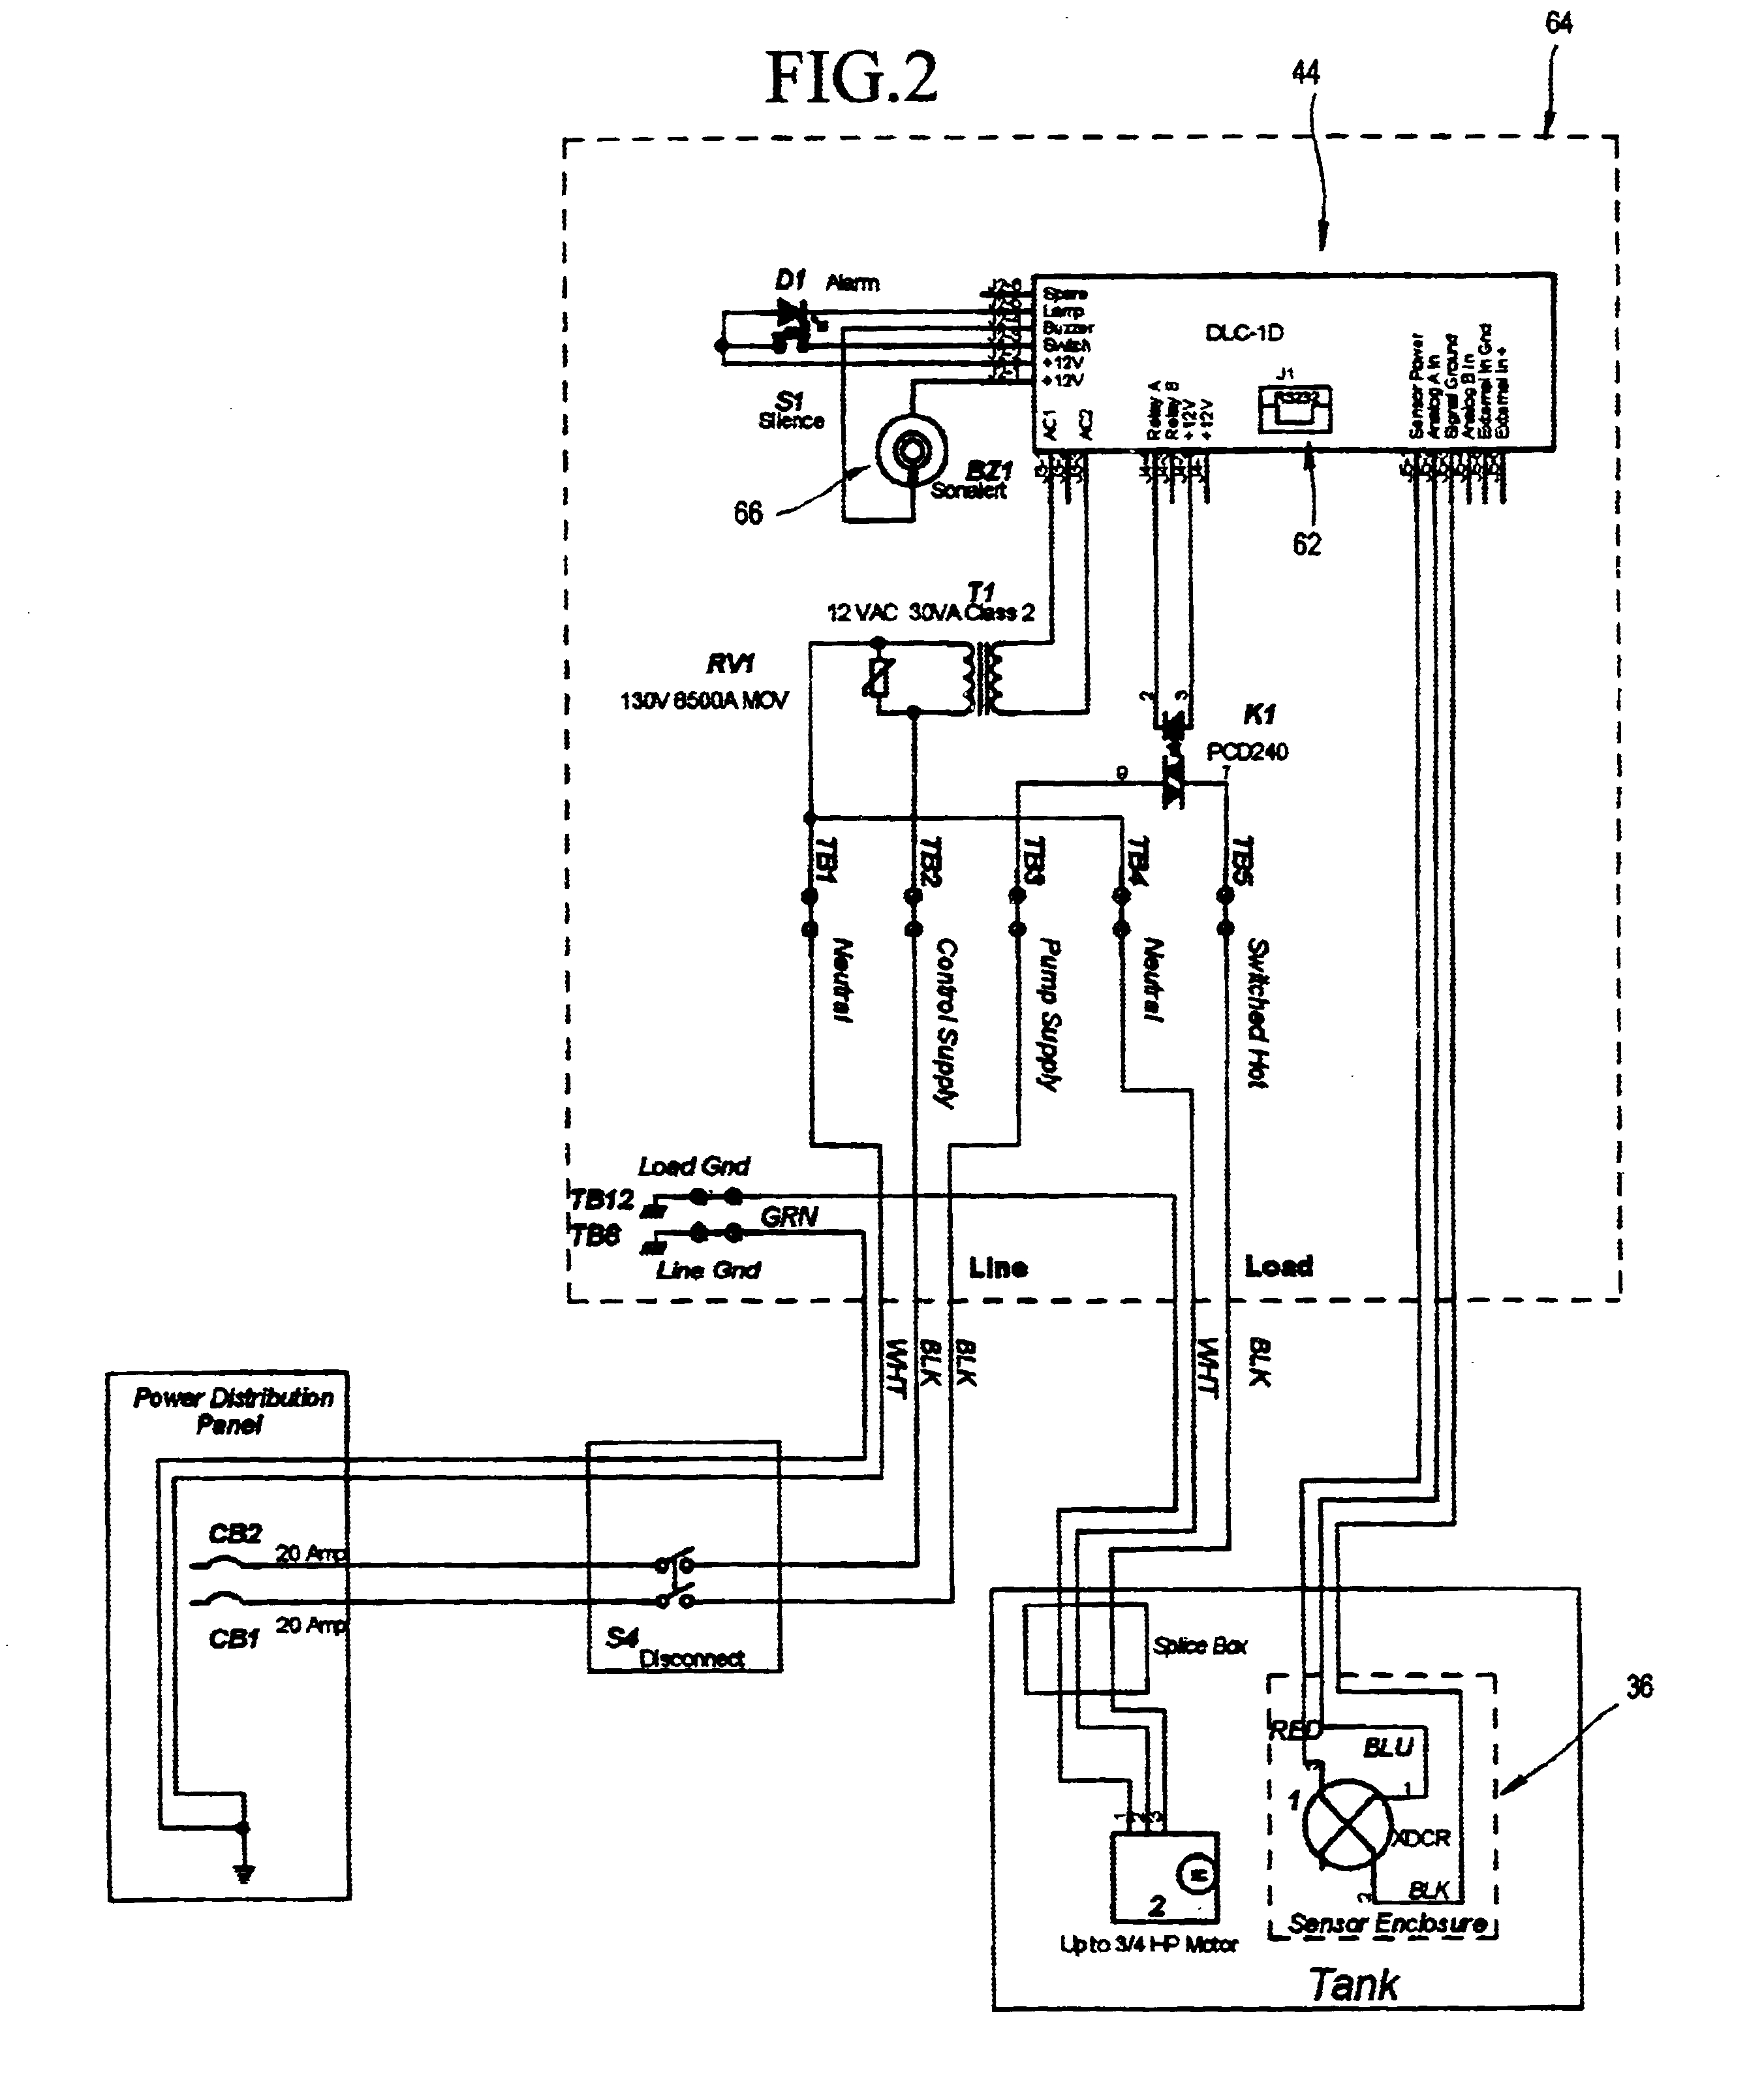 septic tank float switch wiring diagram Download-Septic Tank Float Switch Wiring Diagram Beautiful How to Wire A Septic Tank Pump Cm Bbs 5-f